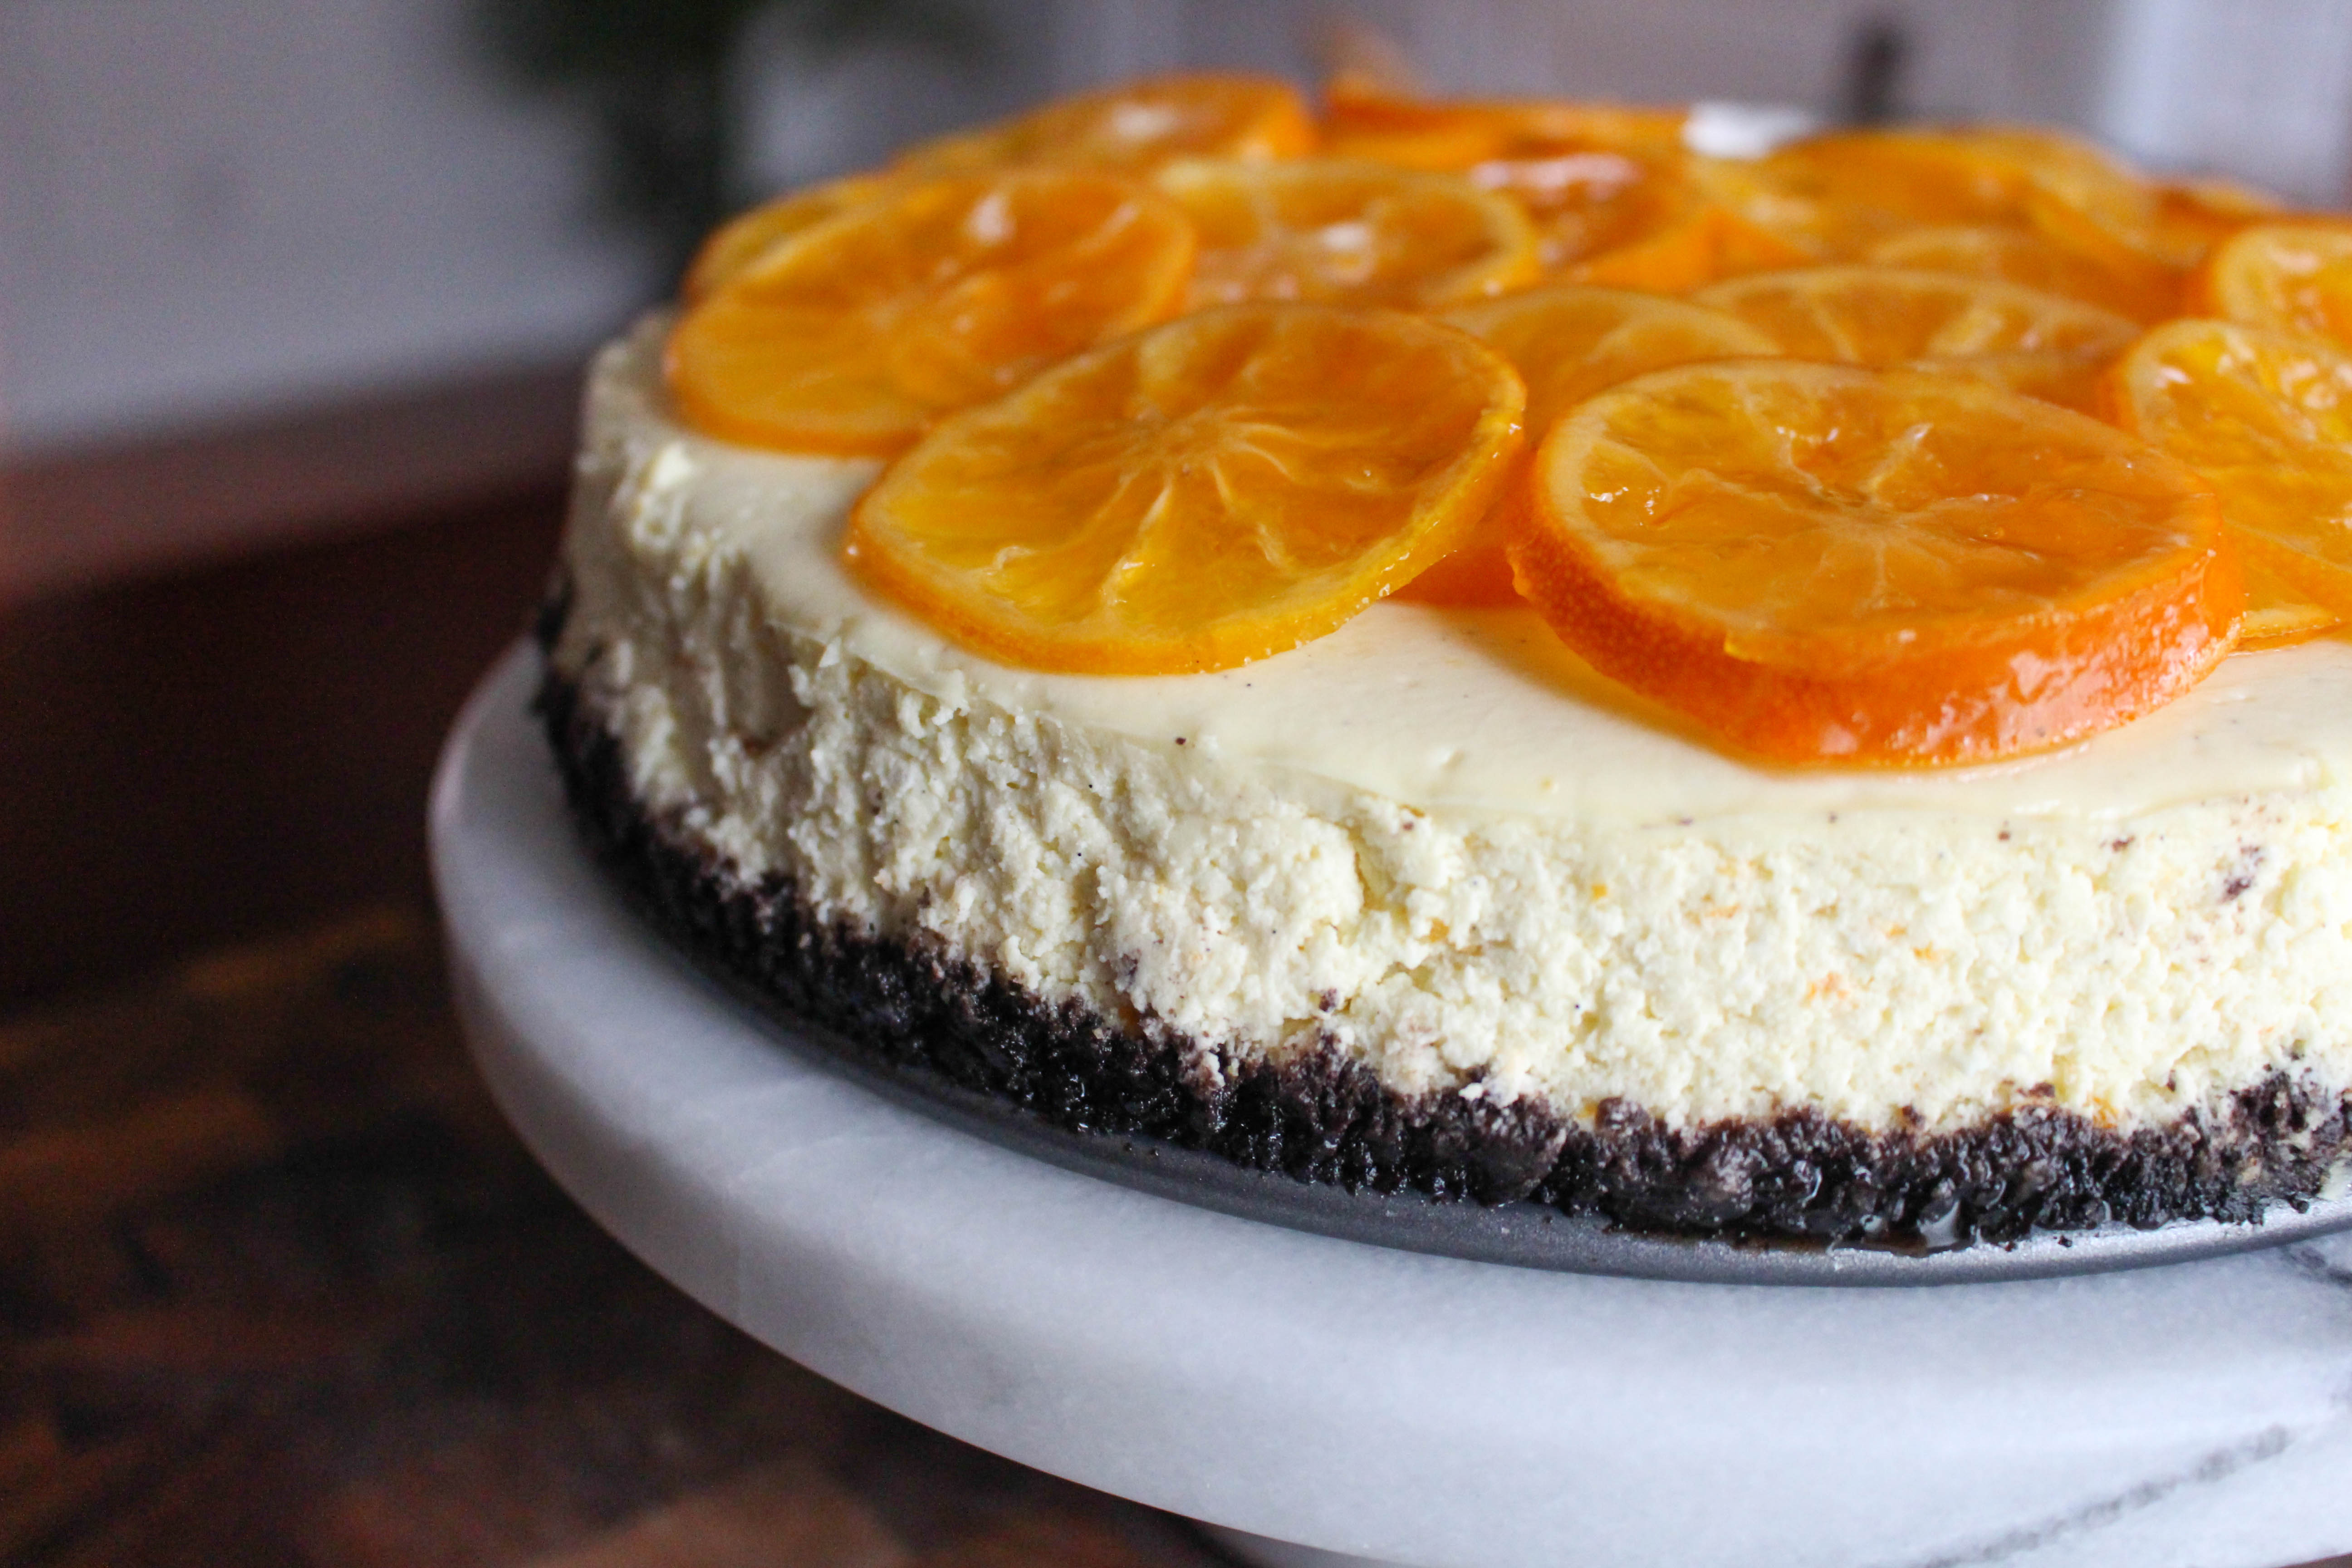 ... Bean Cheesecake with Chocolate Cookie Crust & Candied Clementines